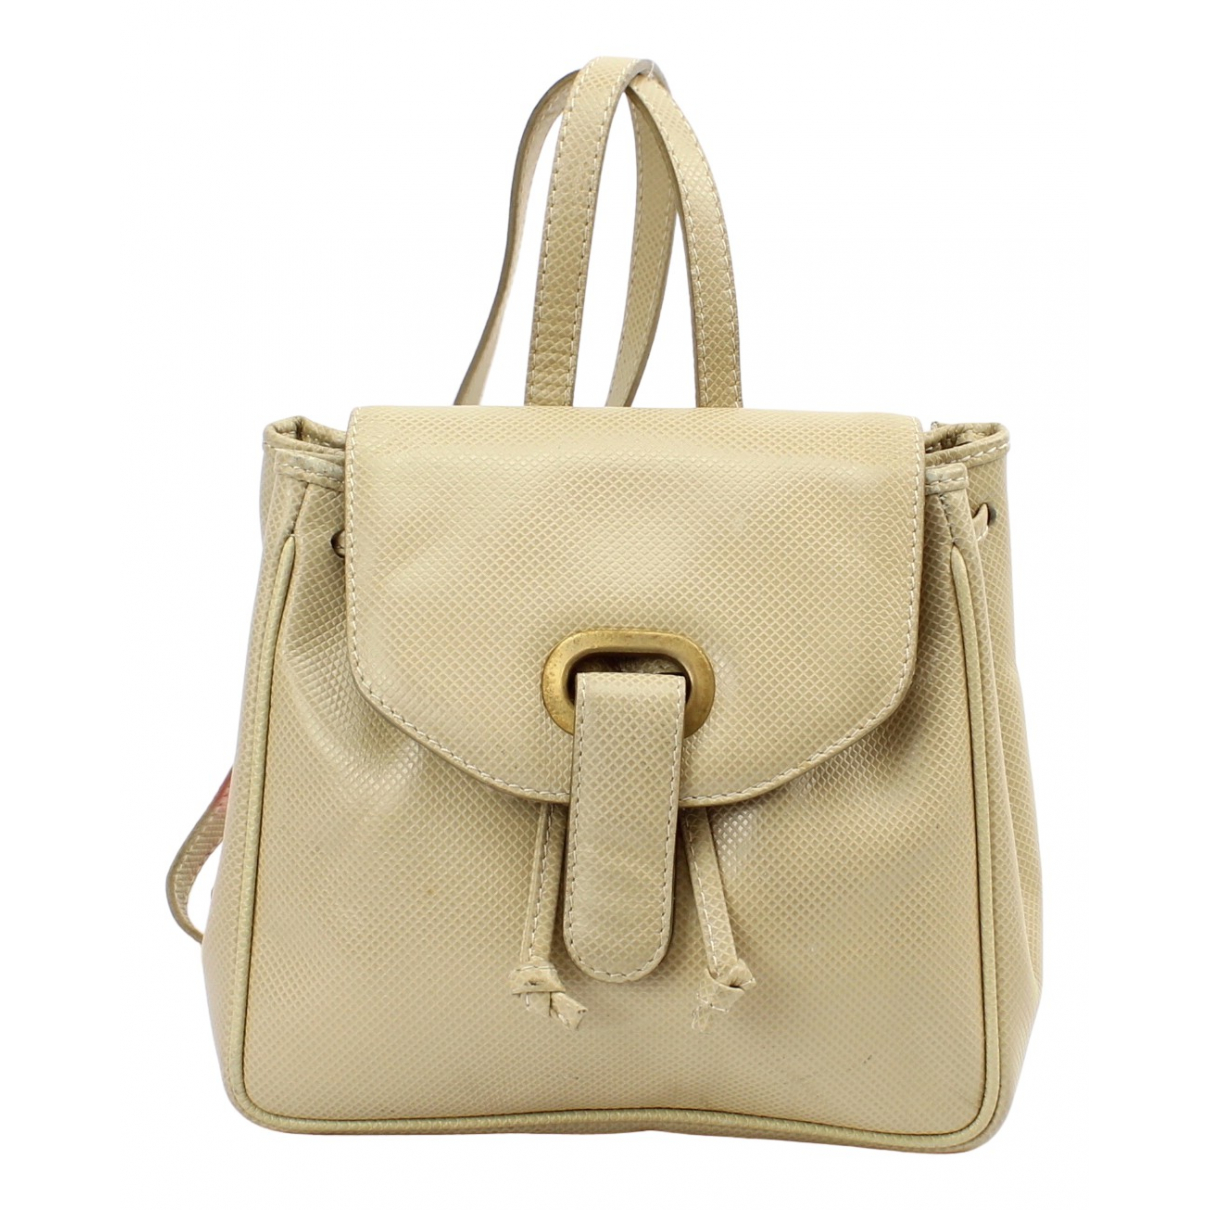 Bottega Veneta \N Beige Leather backpack for Women \N